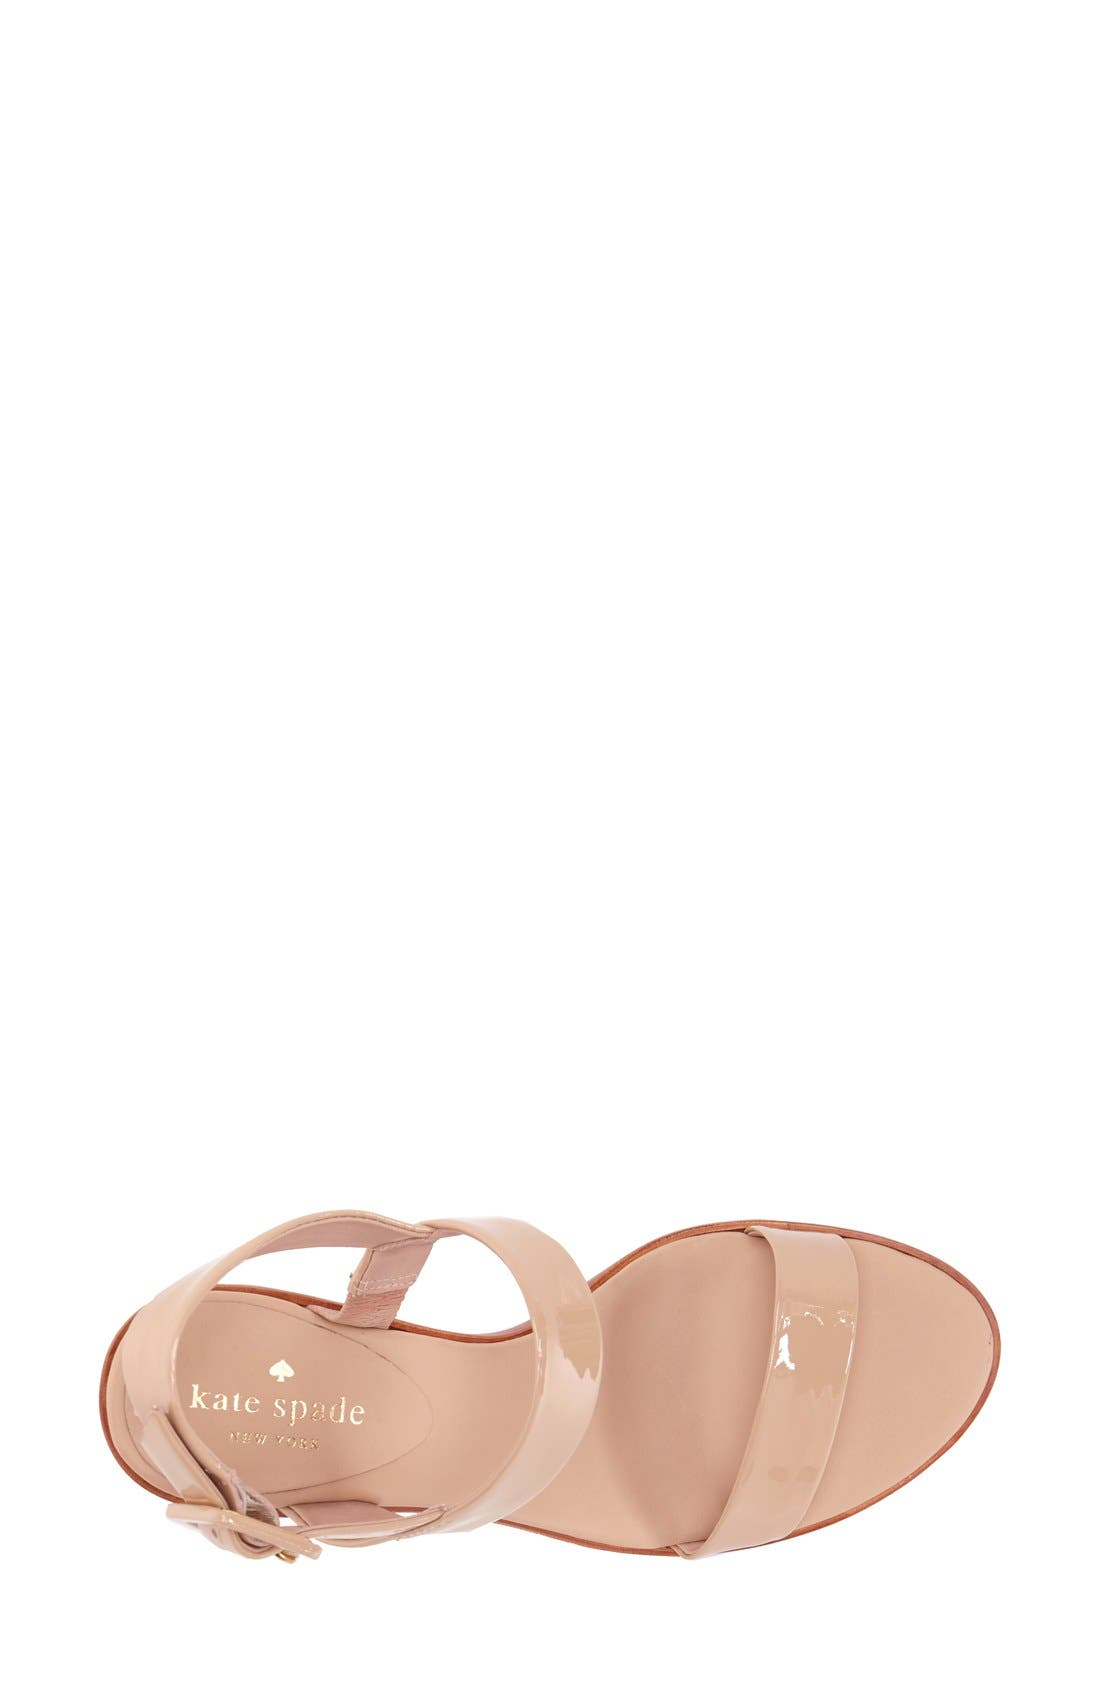 Alternate Image 3  - kate spade new york 'nice' sandal (Women)